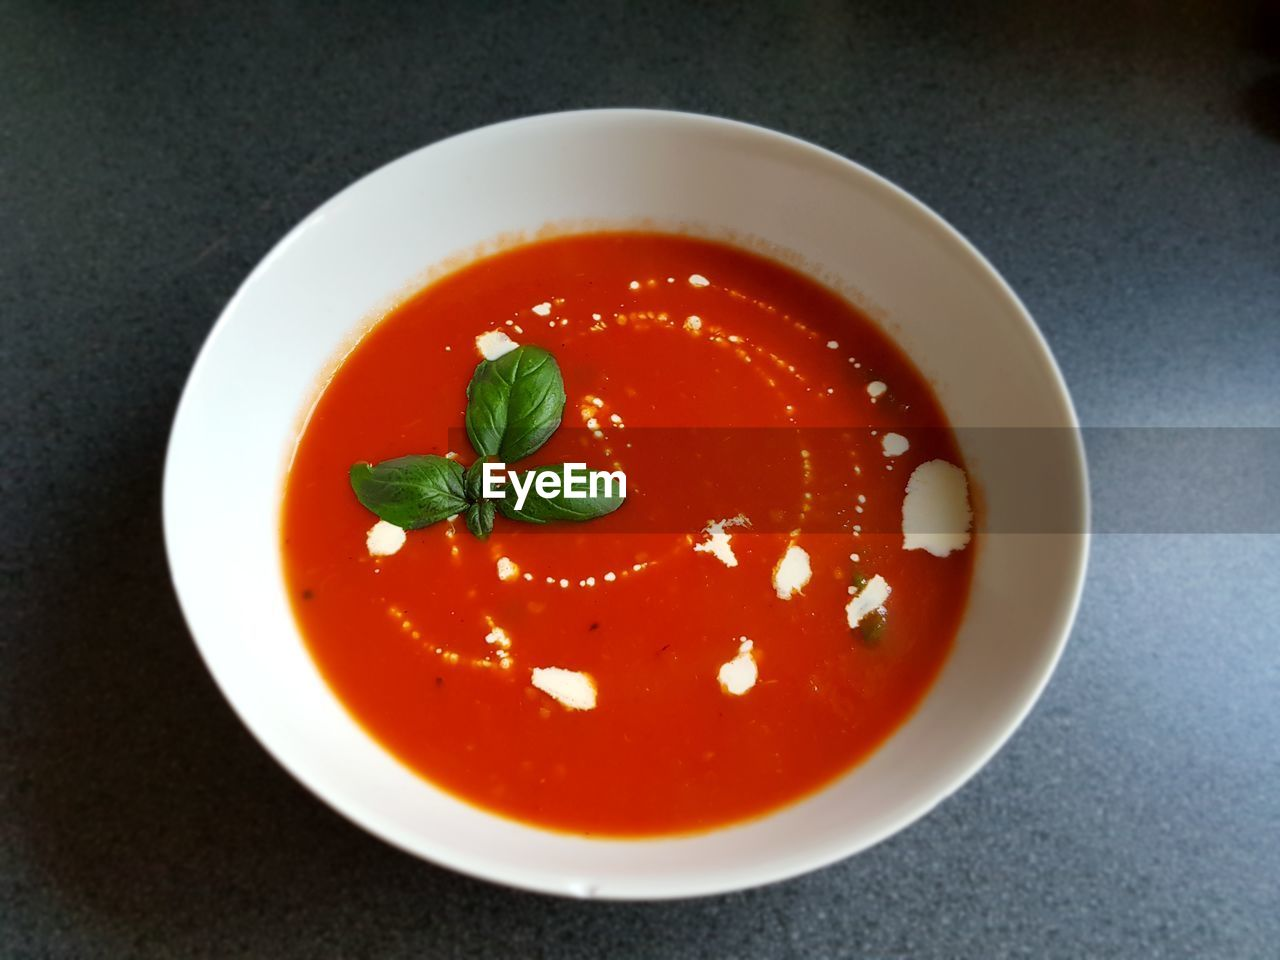 food and drink, food, freshness, still life, tomato, herb, indoors, close-up, table, bowl, red, ready-to-eat, healthy eating, fruit, no people, basil, leaf, soup, wellbeing, garnish, mint leaf - culinary, tomato sauce, temptation, crockery